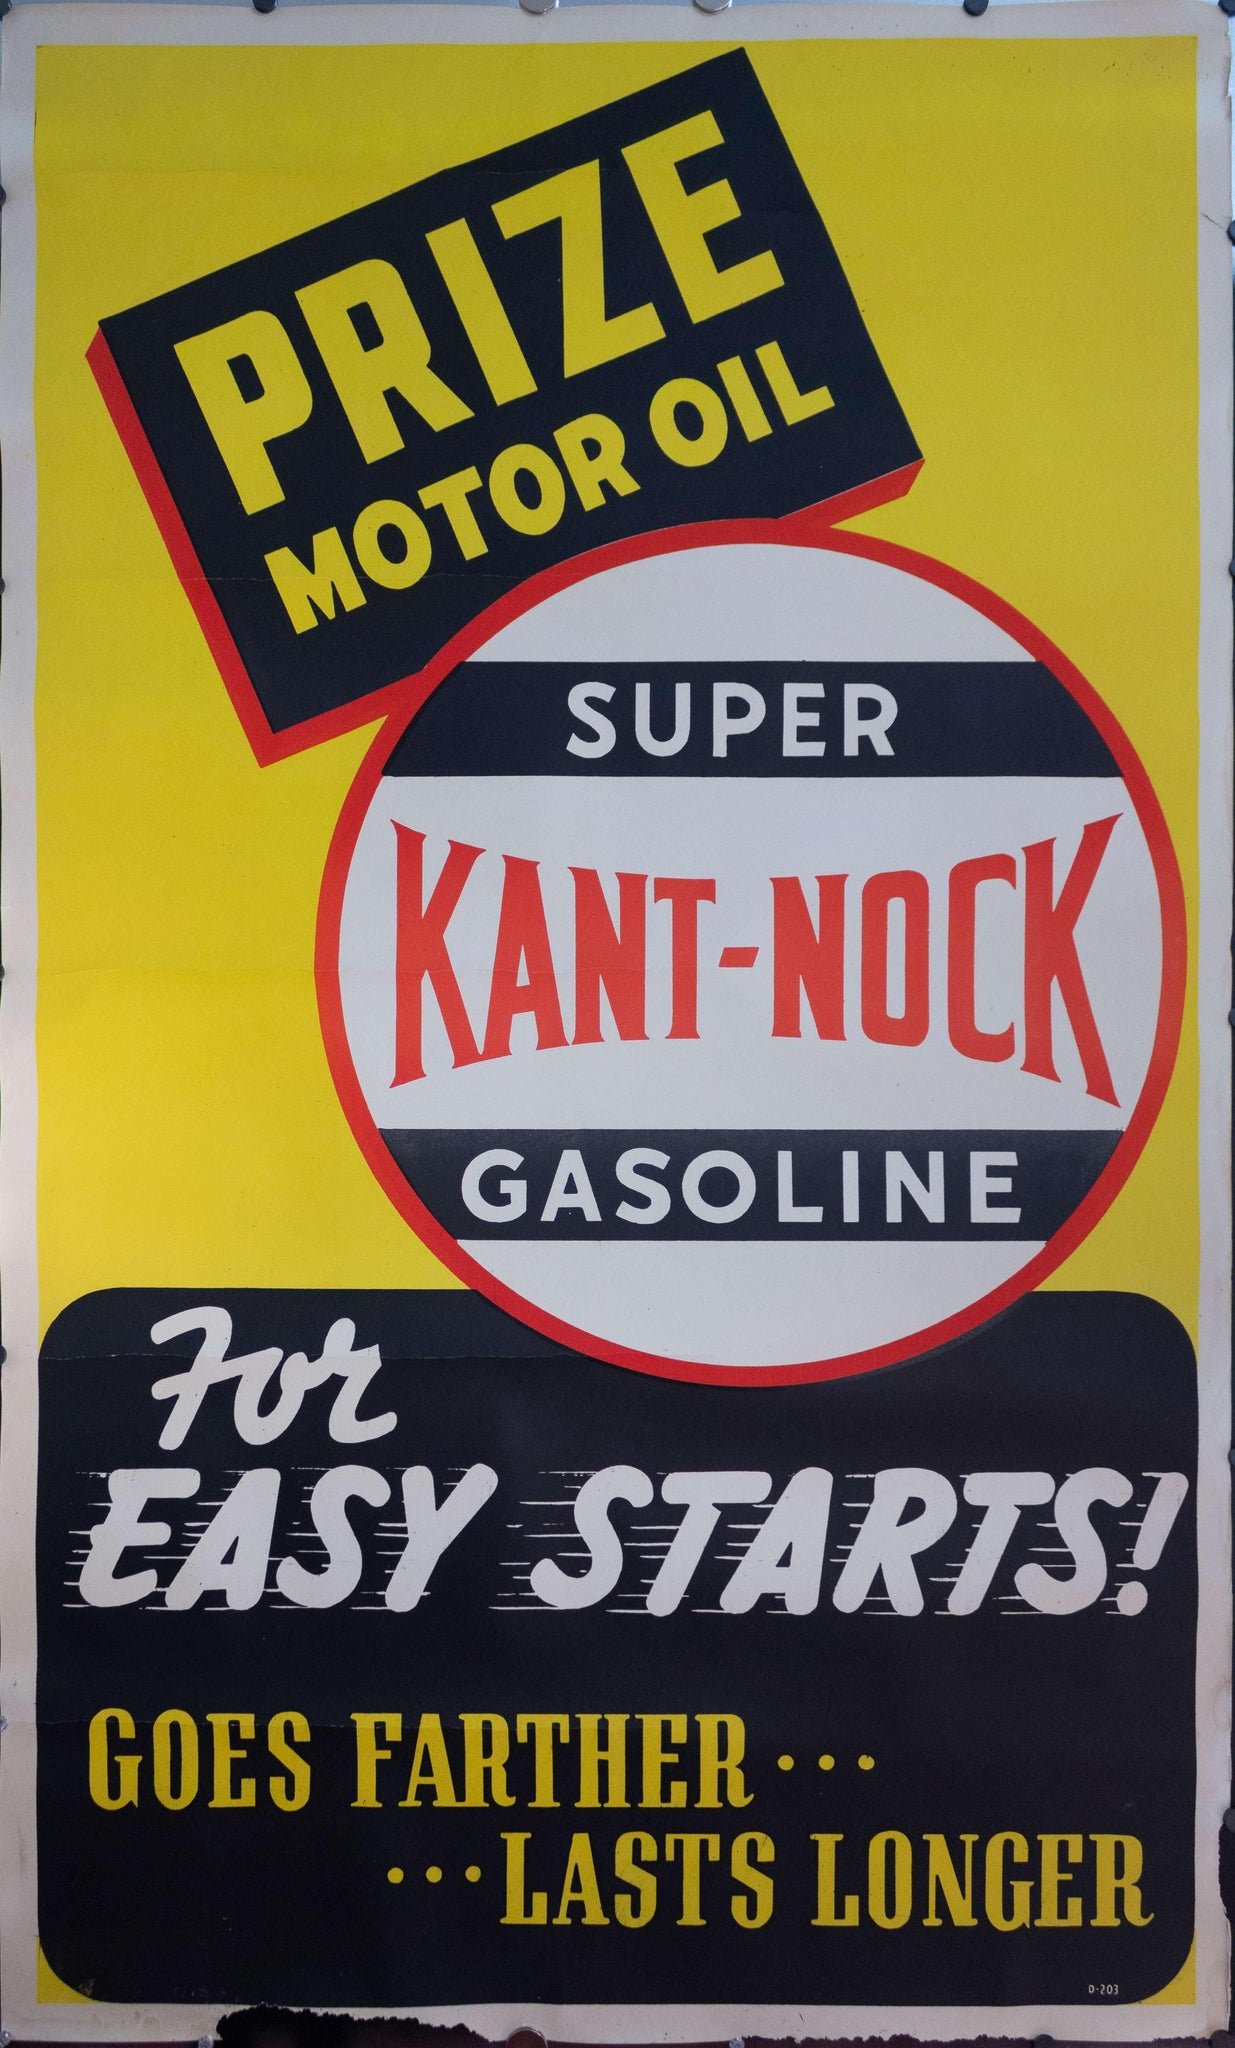 c. 1950s Prize Motor Oil | Super Kant-Nock Gasoline for Easy Starts! Sign - Golden Age Posters